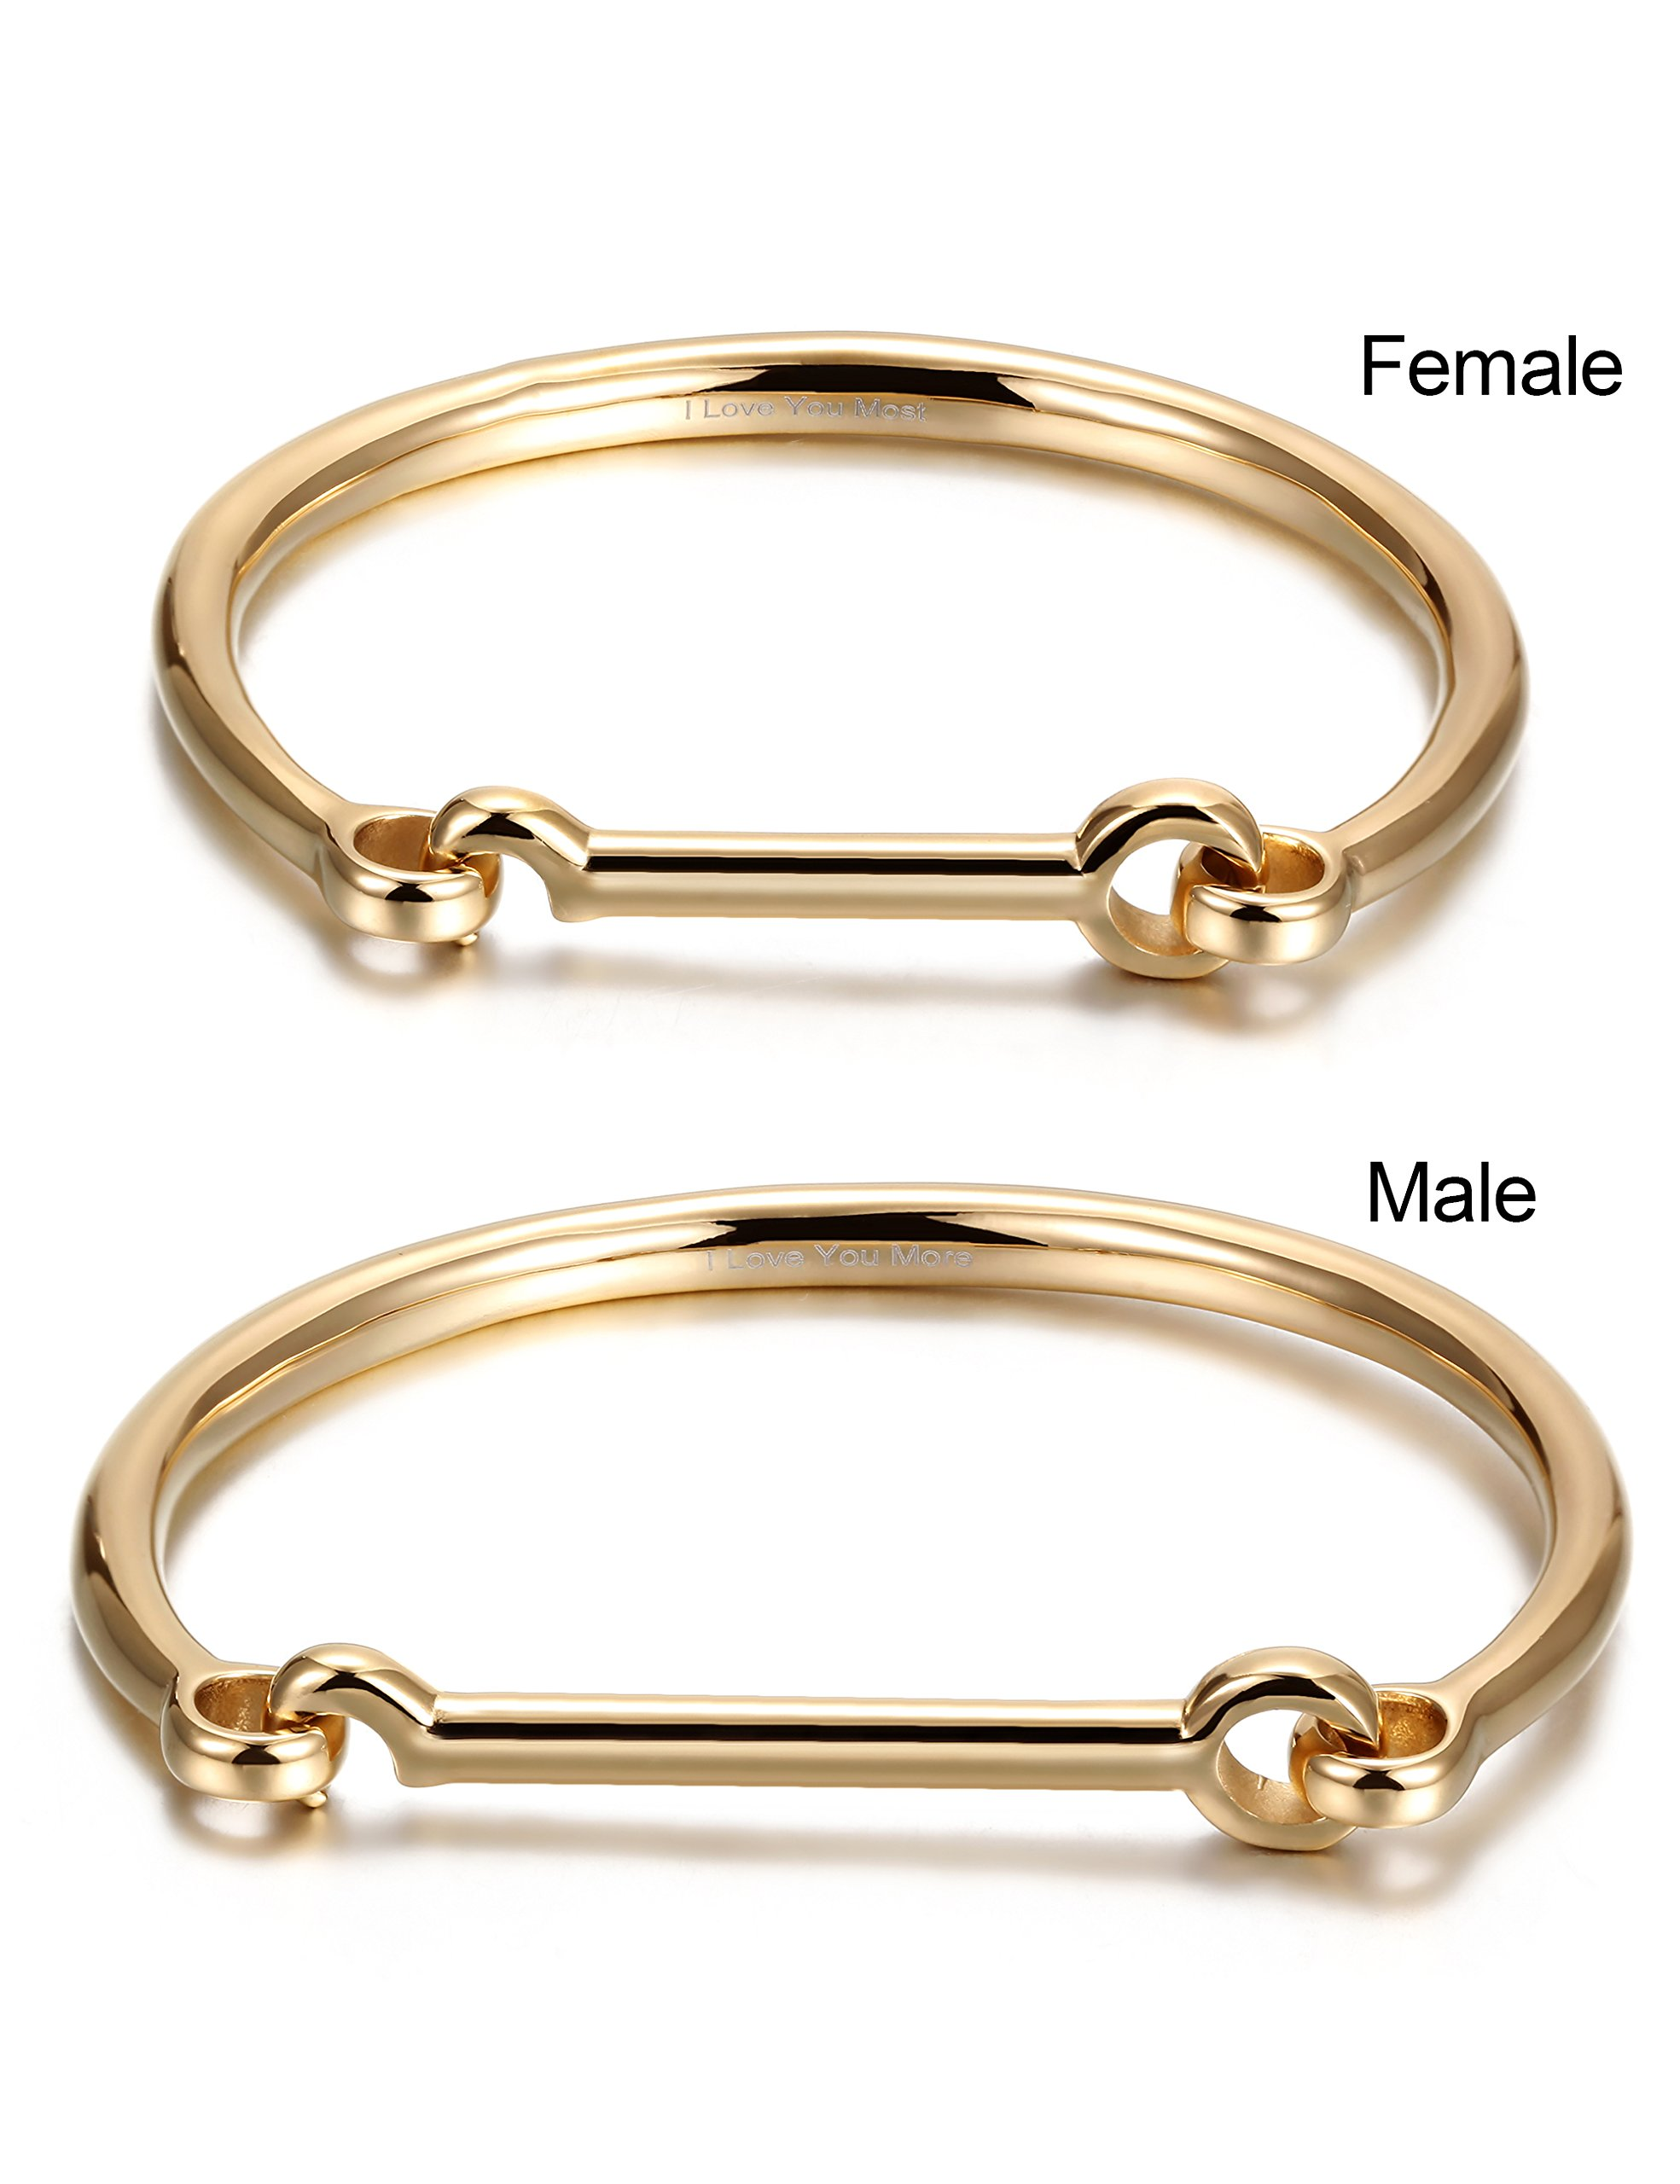 His & Hers Couples Gifts Stainless Steel Flat Head Screw Bar D-shape Cuff Bangle Bracelet Gold (2pcs)